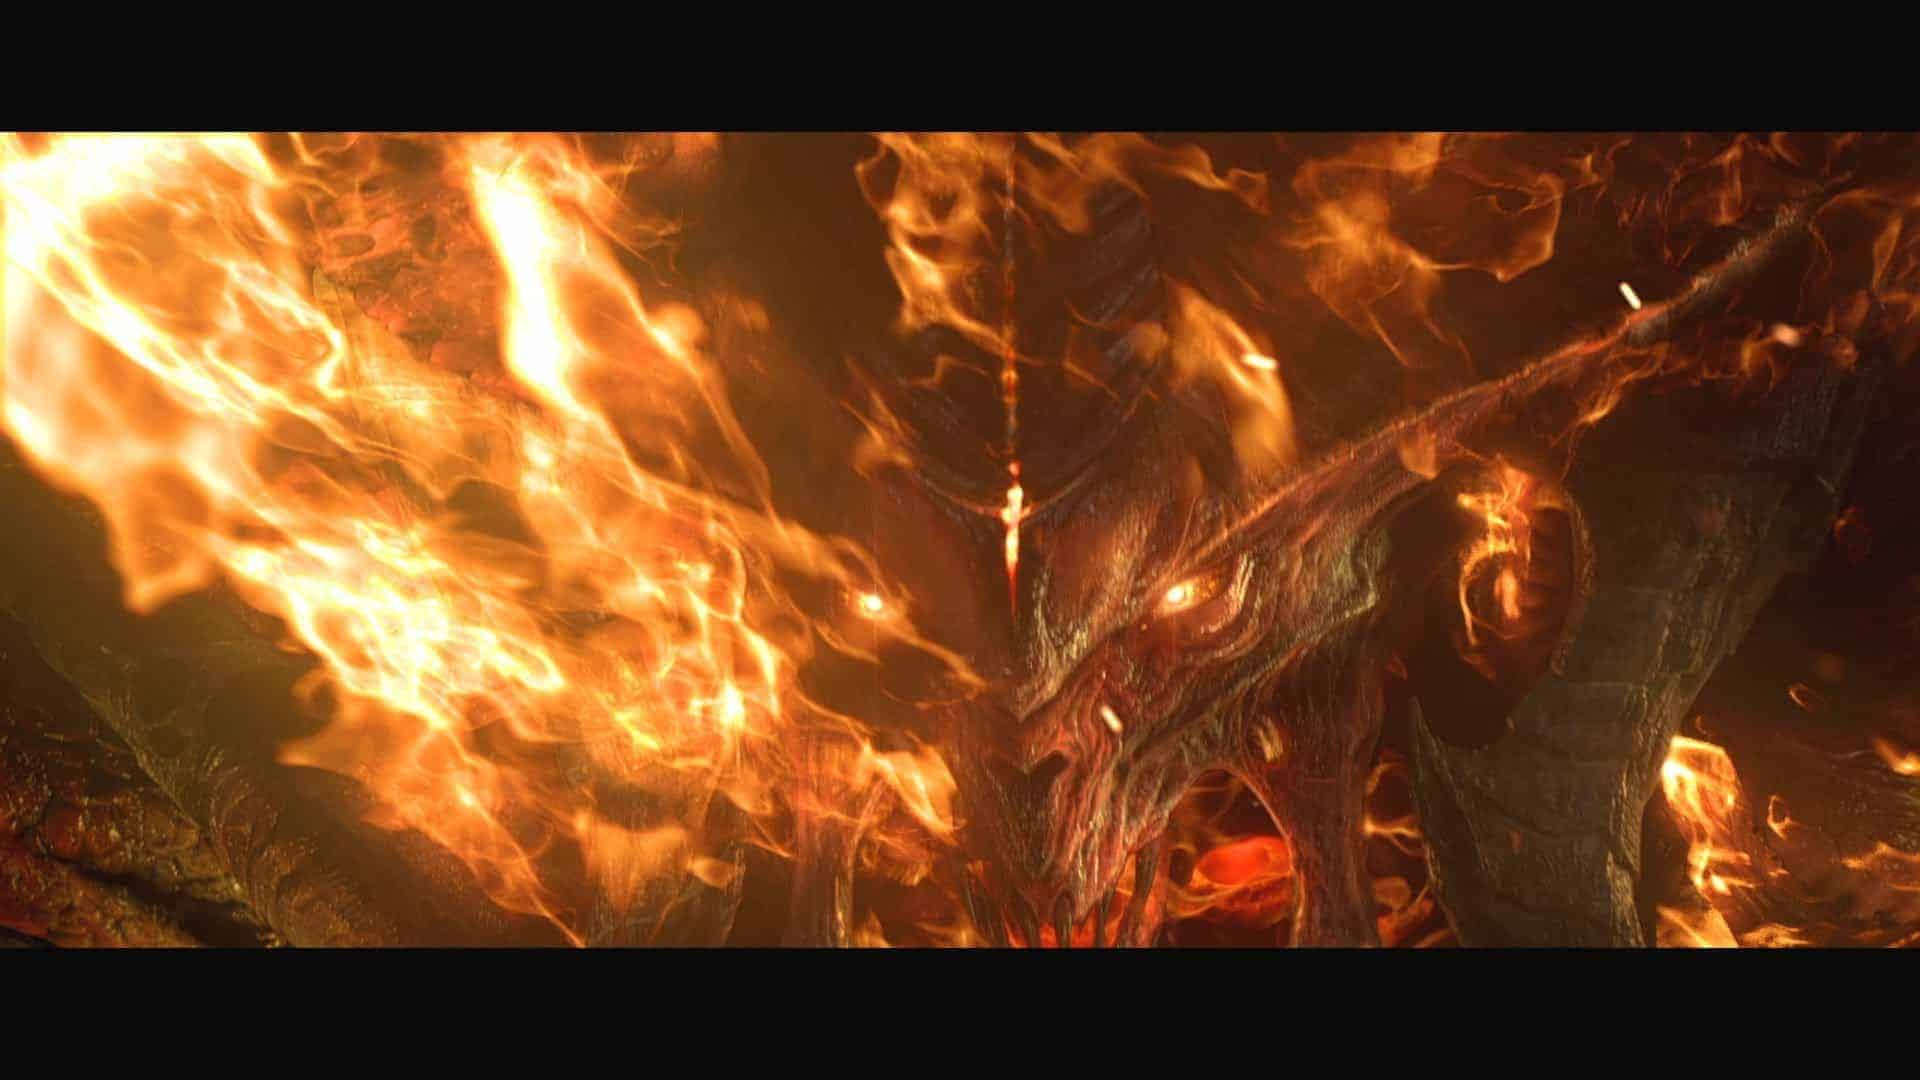 Diablo 3 Commercial makes its way to TV